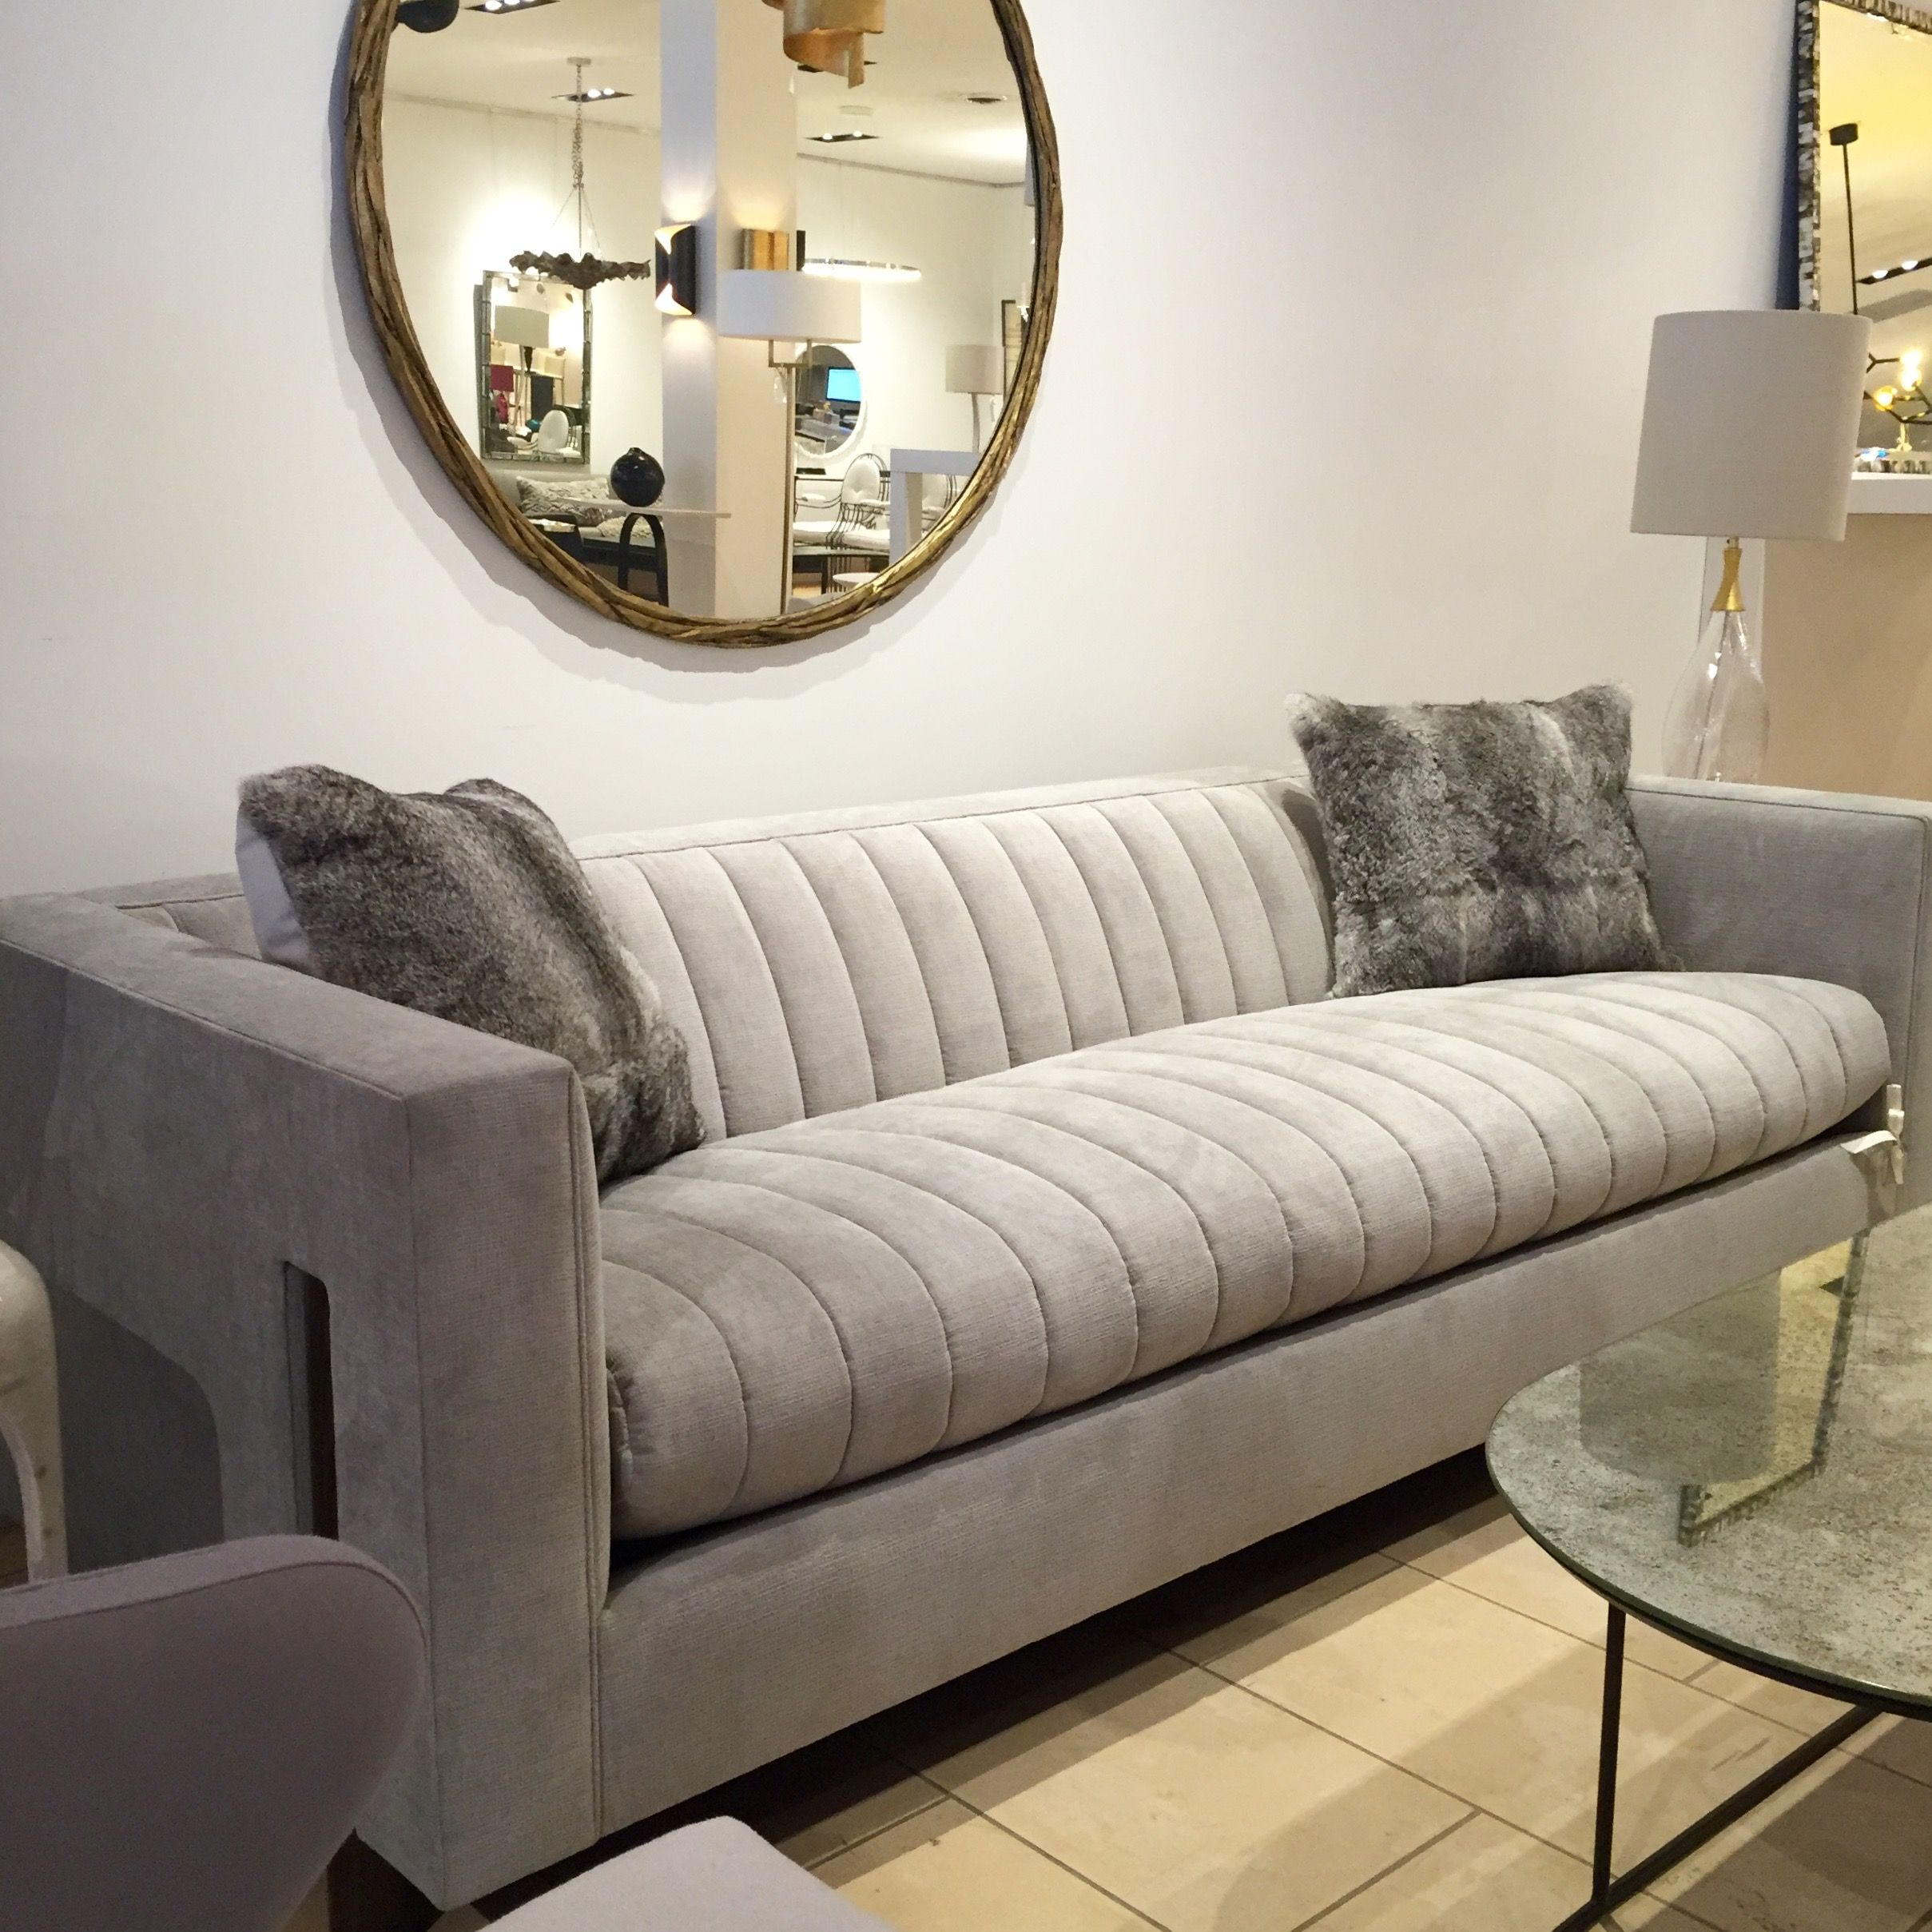 Gray Sofa by Douglas Levine for Bright Chair #SouthHillHome